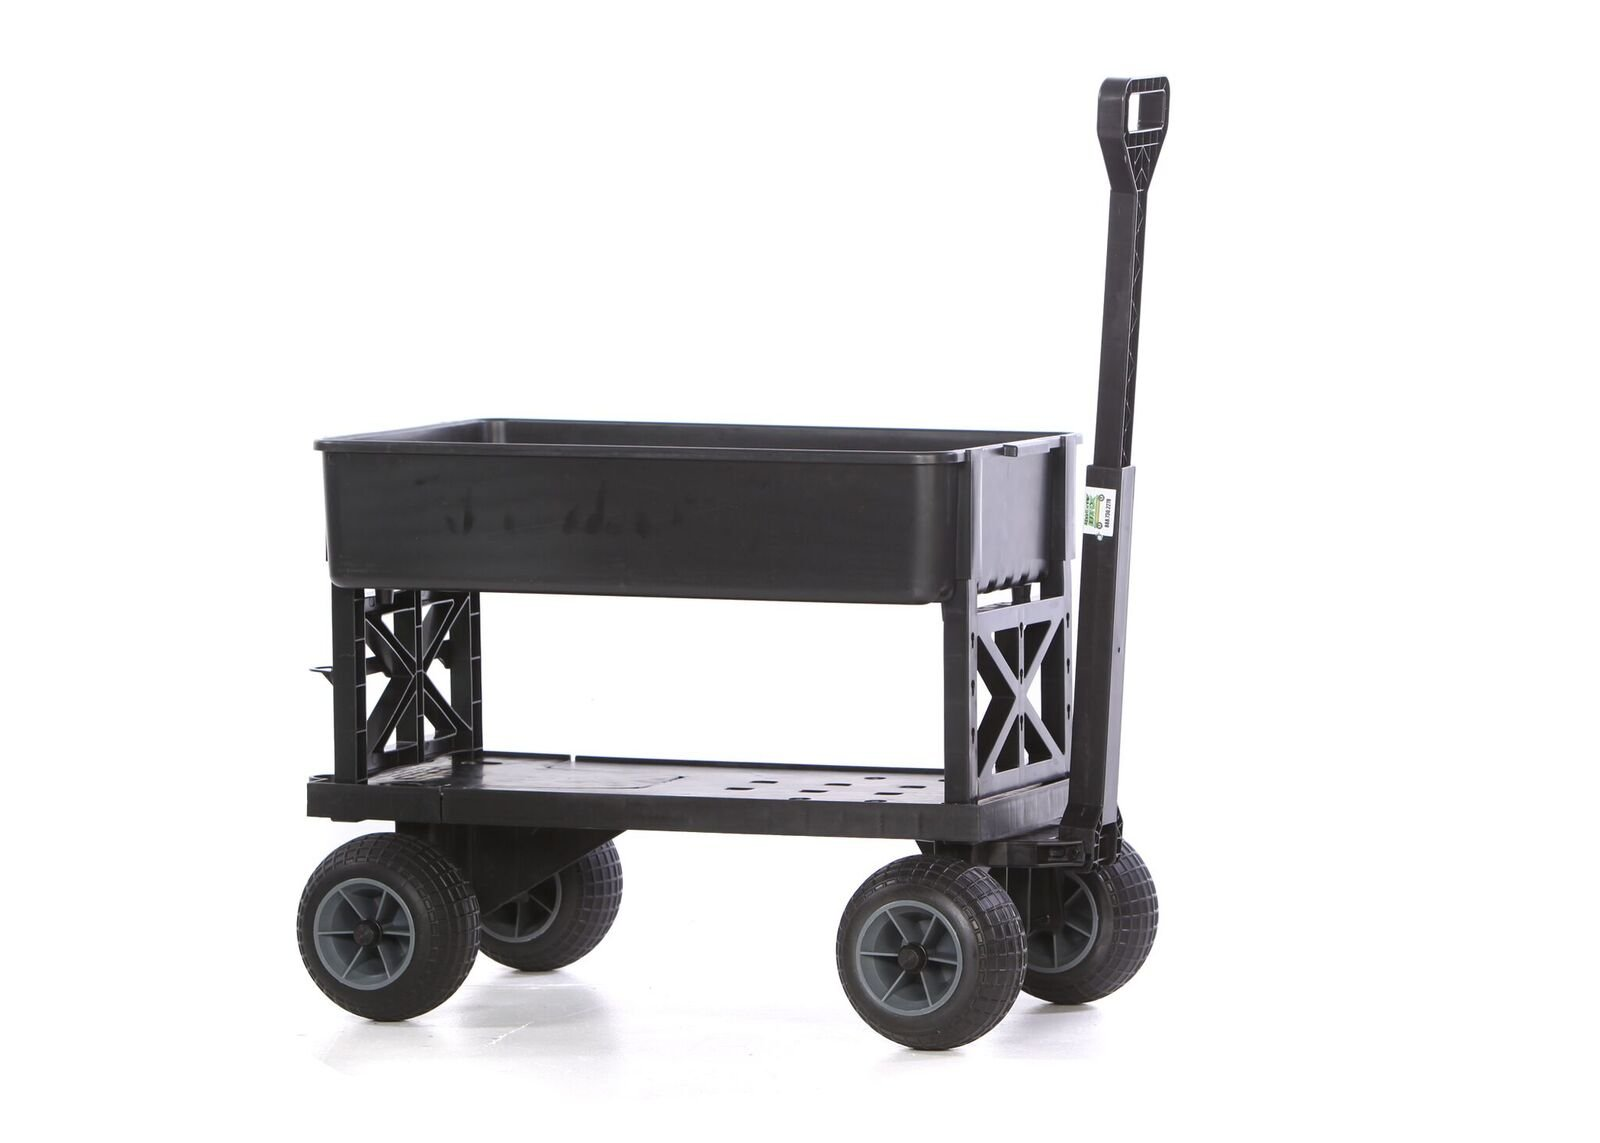 Mighty Max Cart Plus One All-Purpose Utility and Garden Cart with Black Tub and with All-Terrain Weatherproof Wheels by Mighty Max Cart